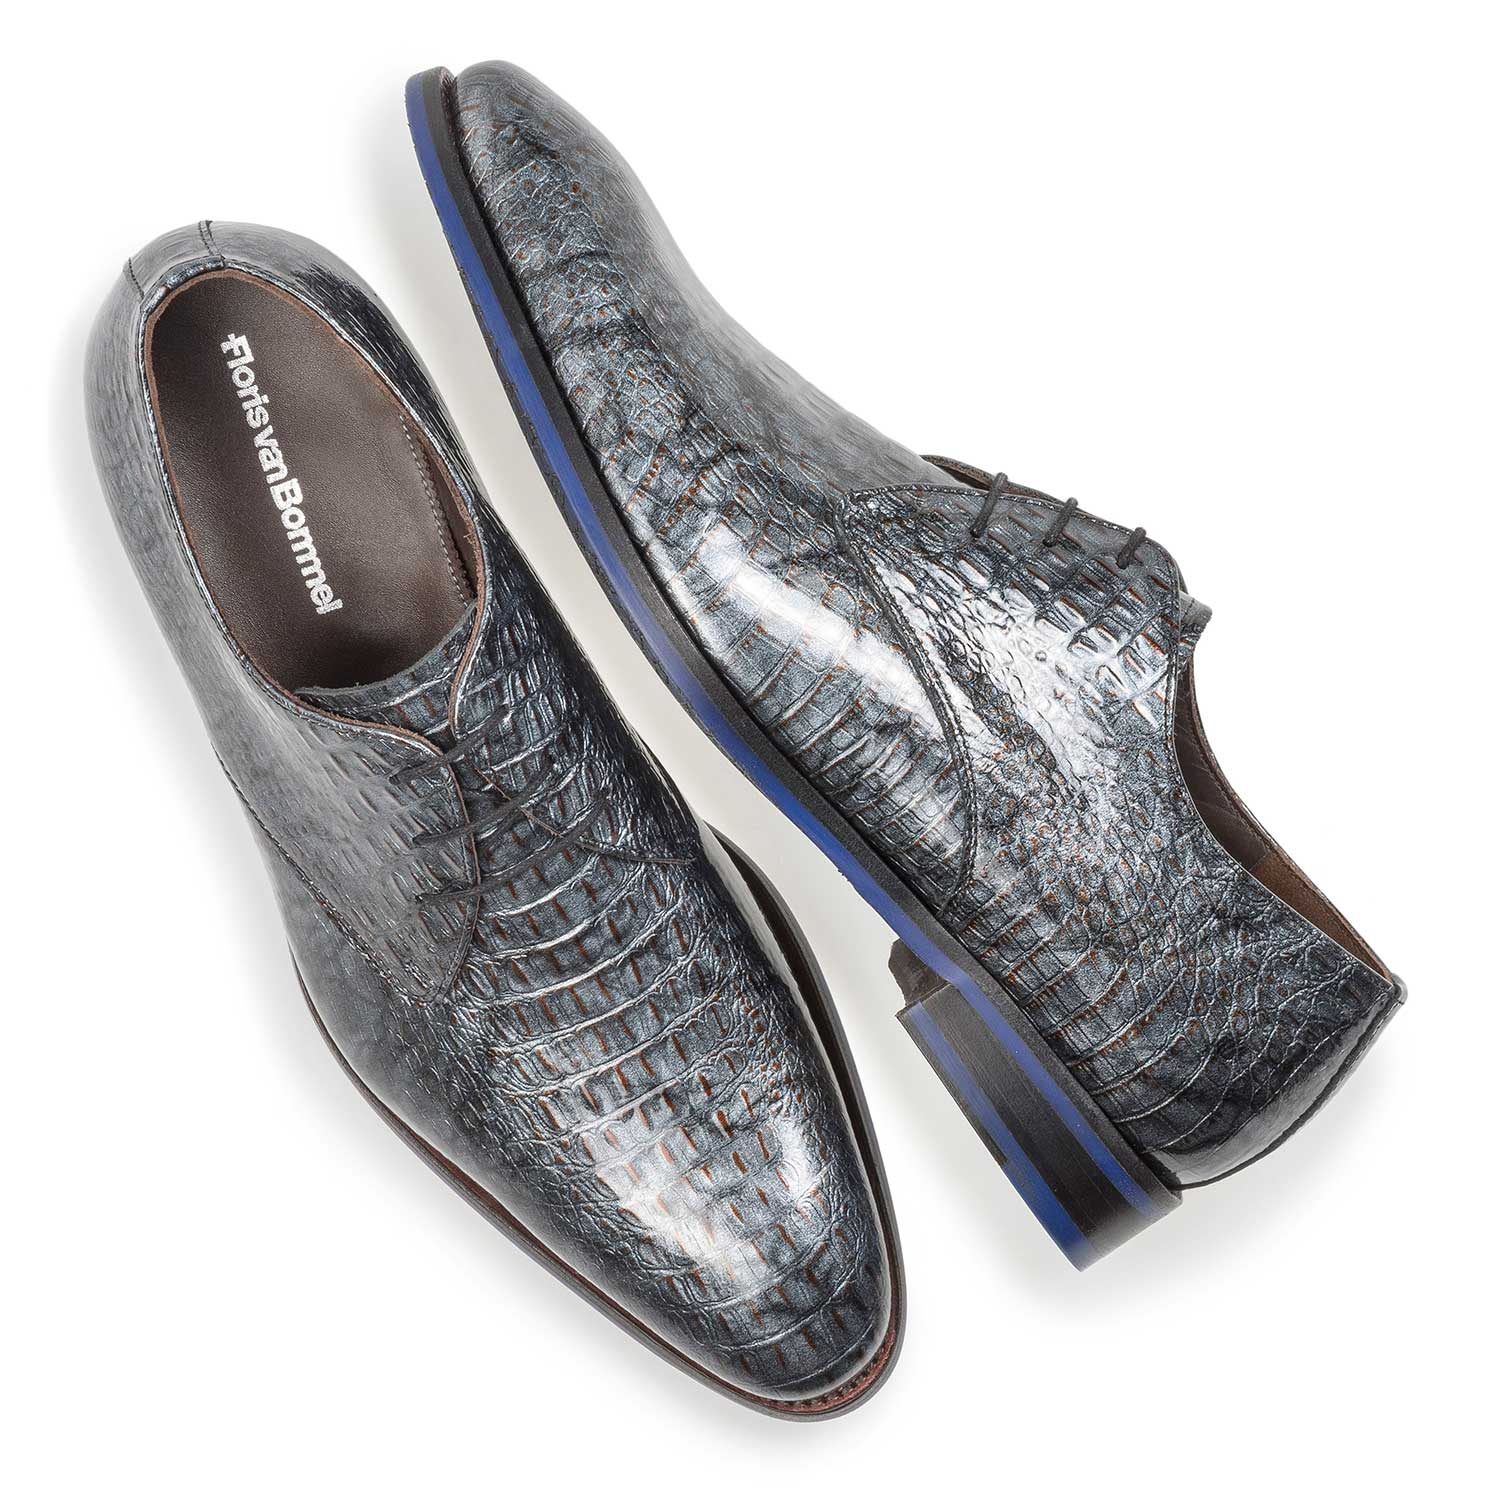 18124/04 - Grey patent leather lace shoe with croco print